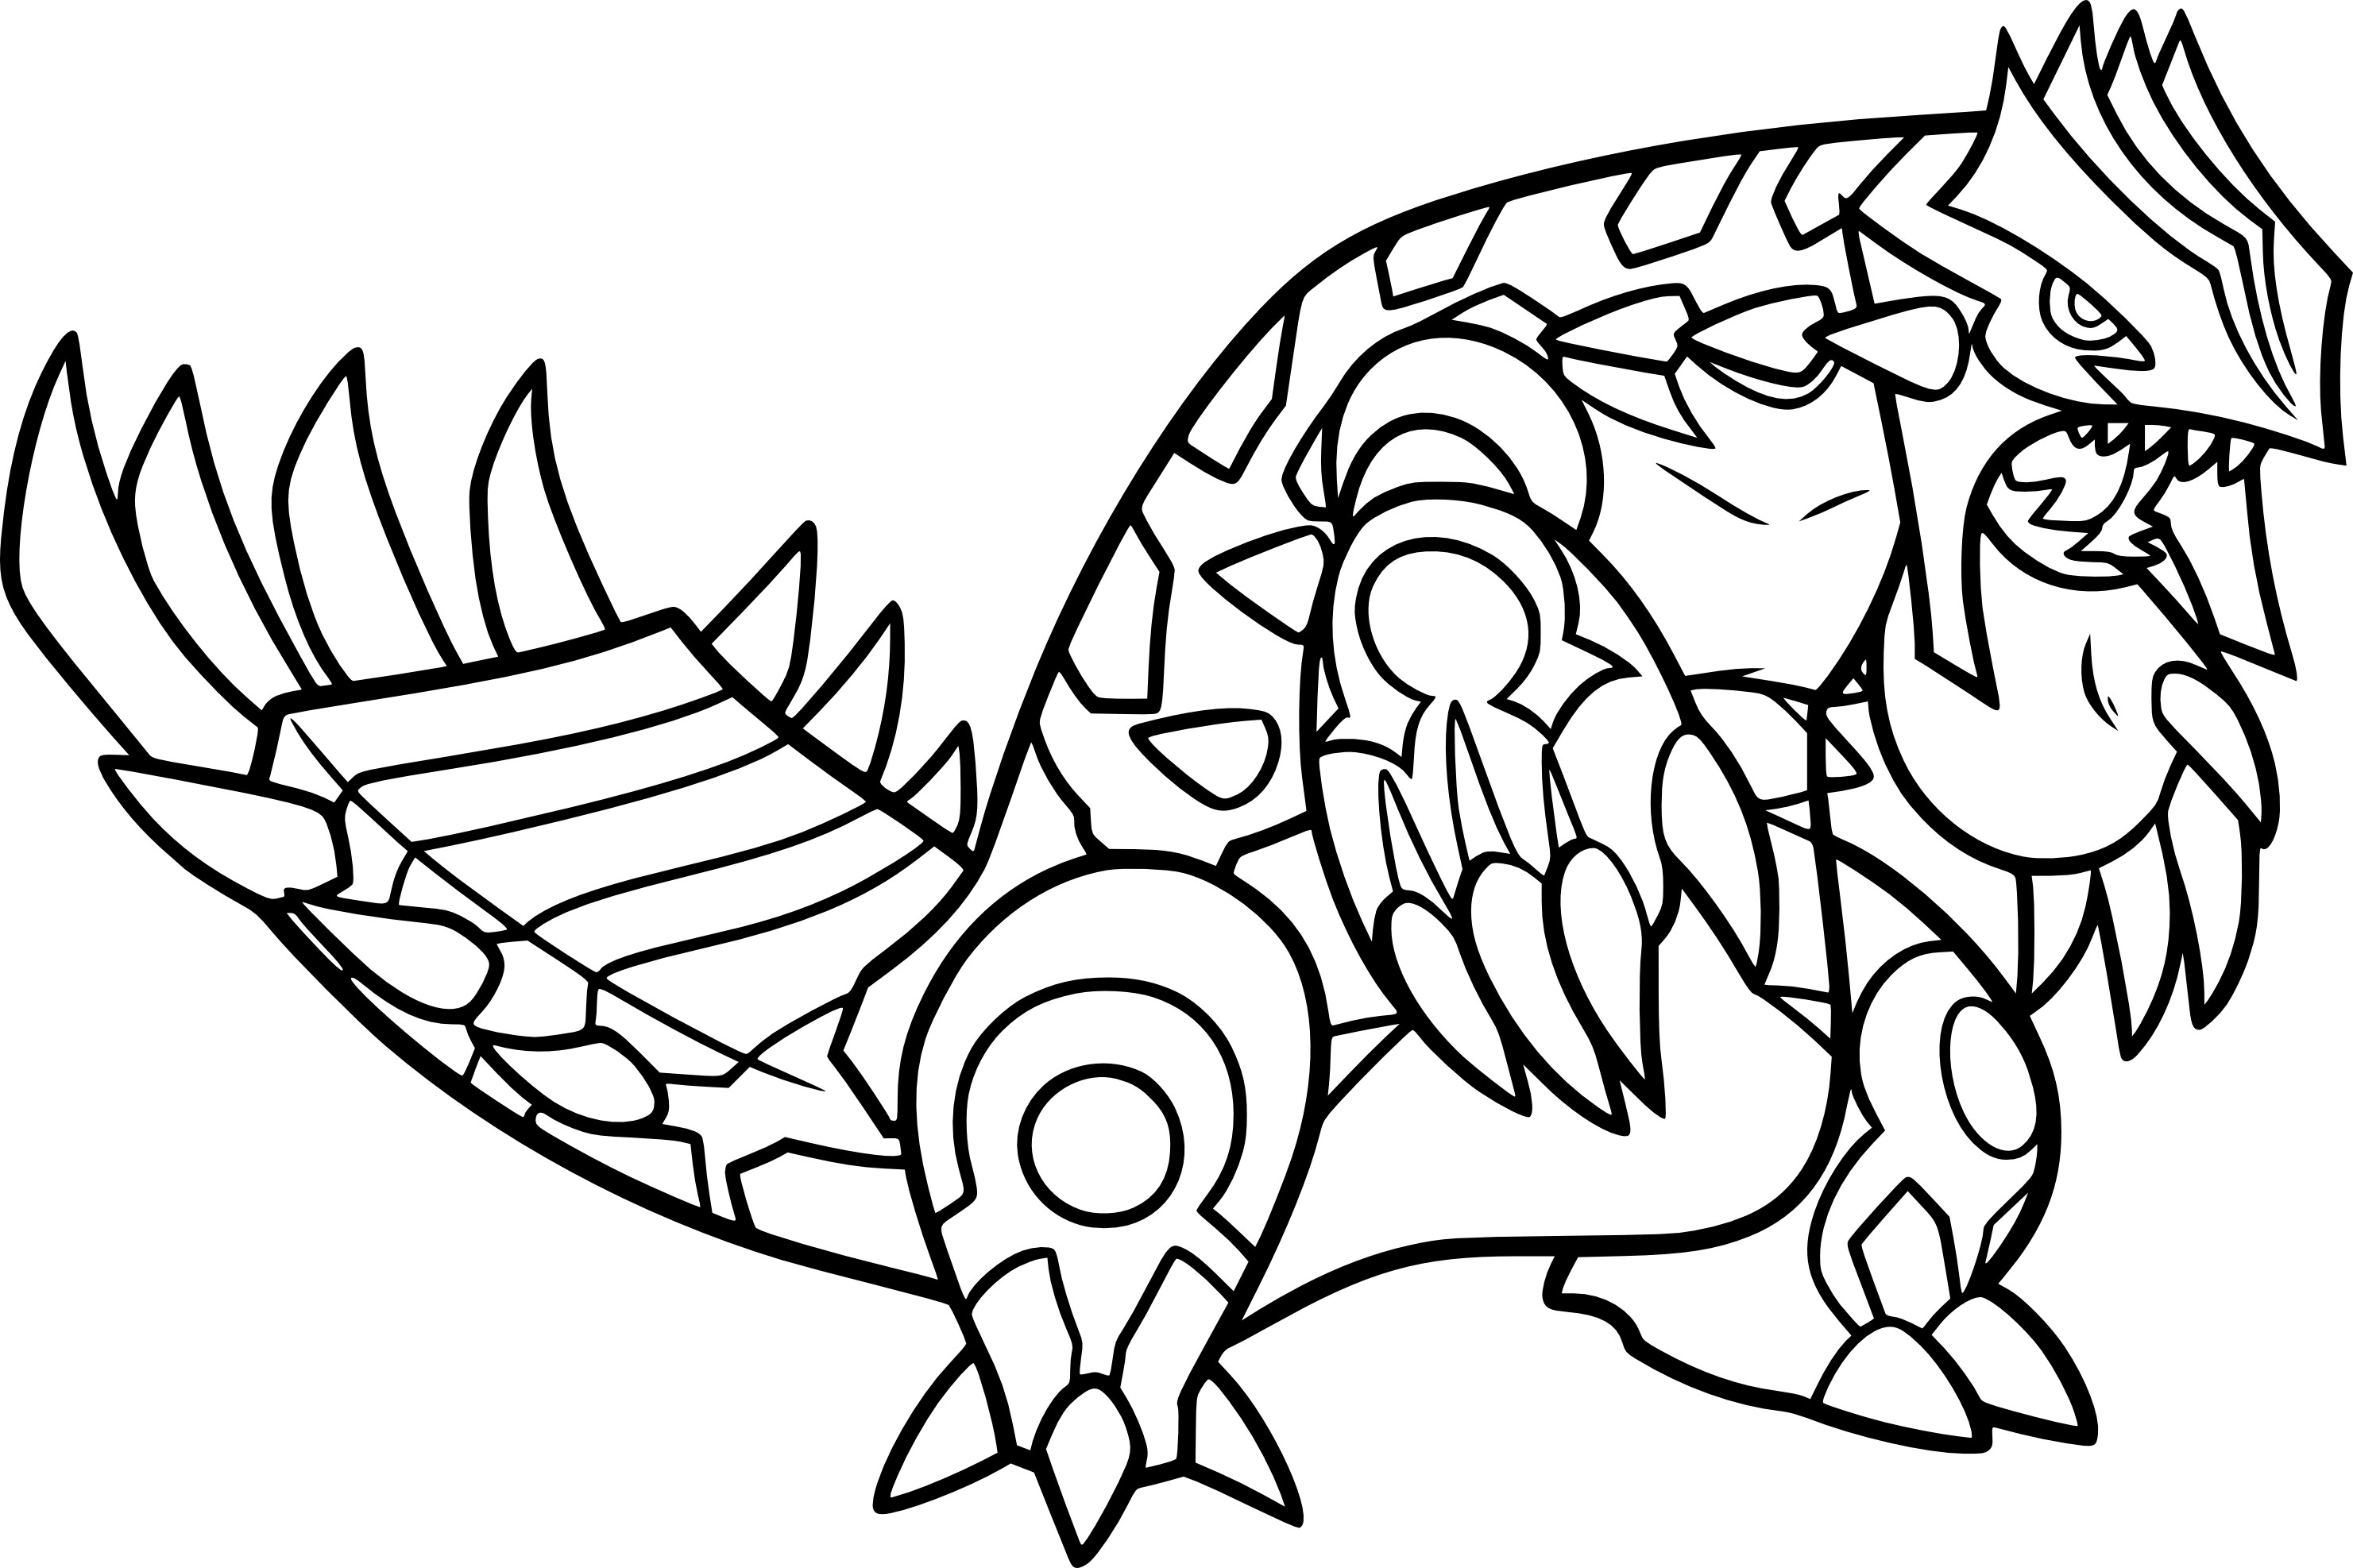 Pokemon Fynx Ausmalbilder : Legendary Pokemon Coloring Pages Xerneas Coloringstar Legendary